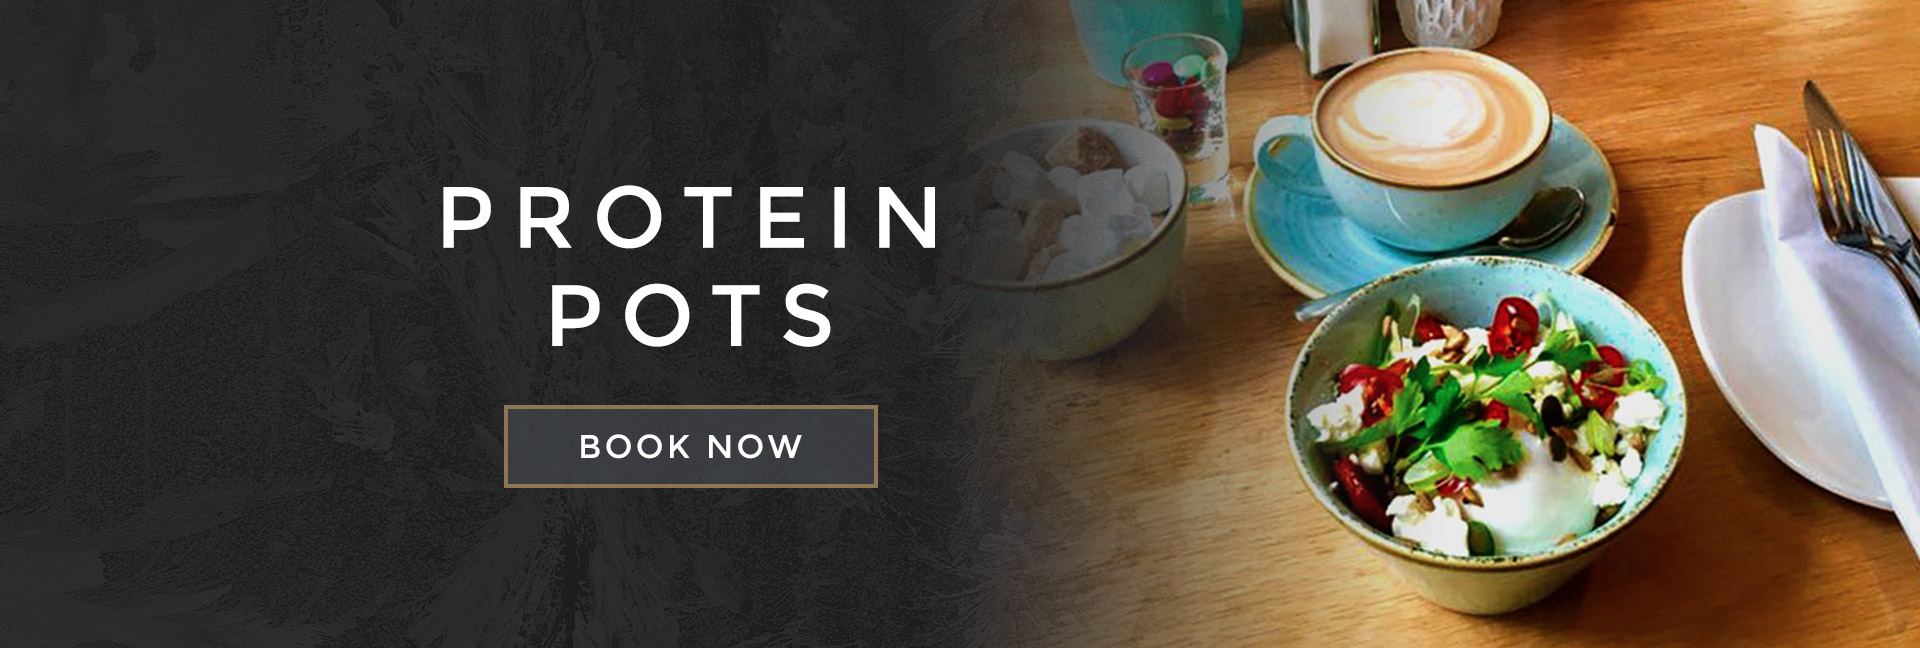 Protein pots at All Bar One Guildford - Book your table